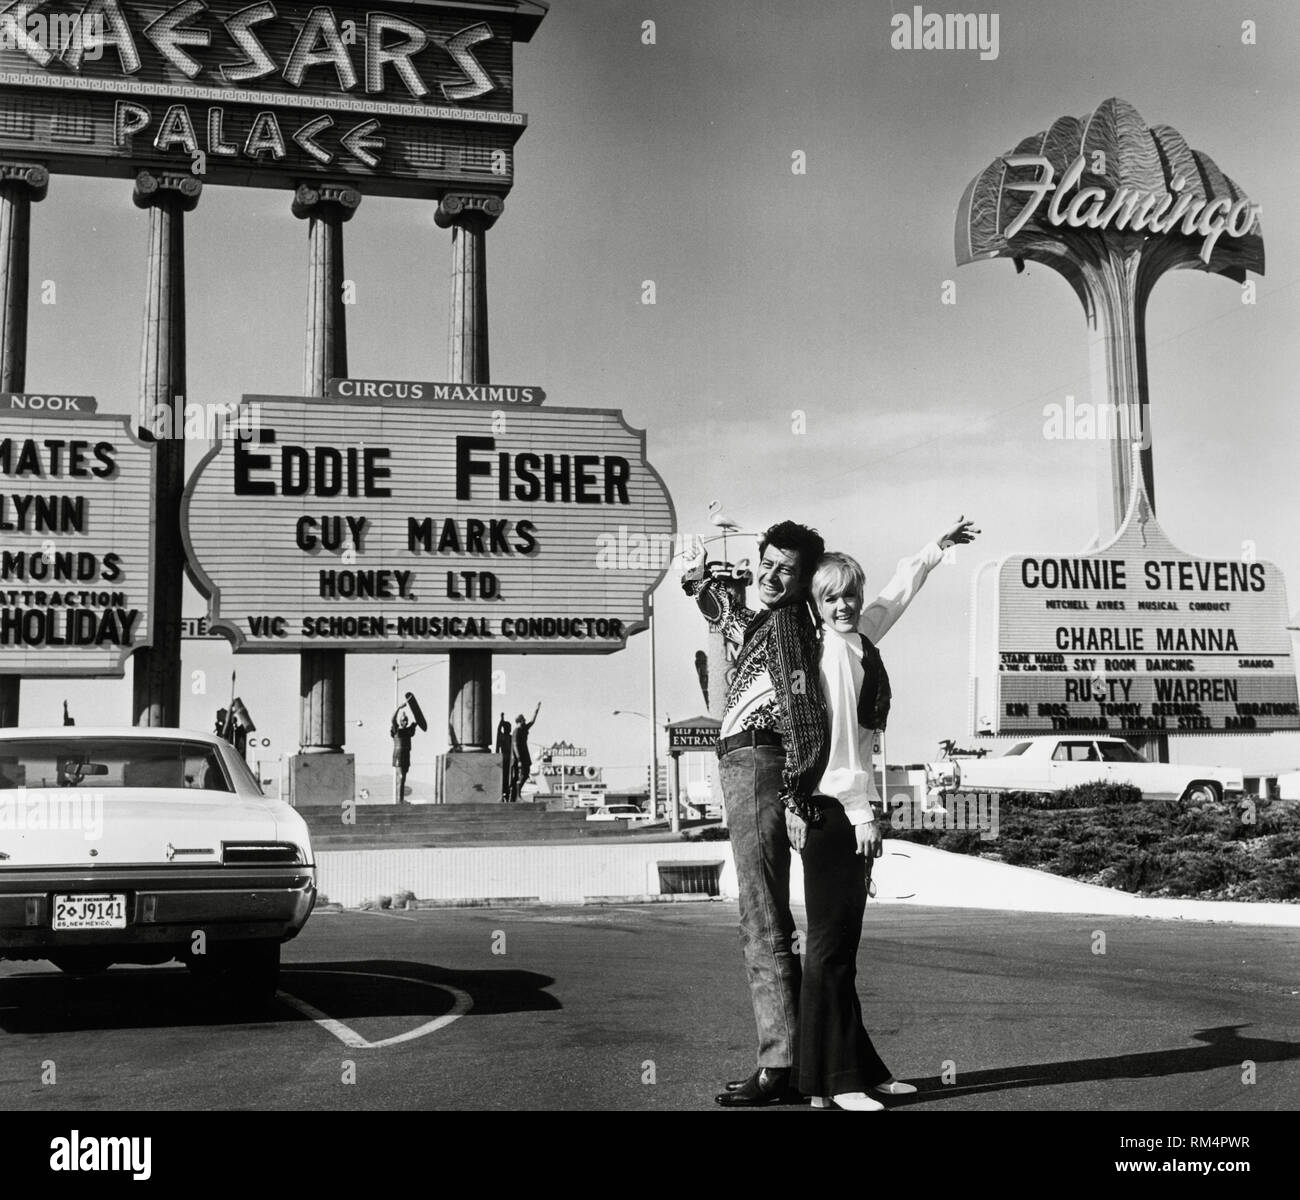 Connie Stevens and her second husband, Eddie Fisher,  pointing to marquees displaying their names - Stevens at the Flamingo and Fisher at Caesar's Palace in Las Vegas, Nevada circa (1969)  File Reference # 33751_220THA - Stock Image